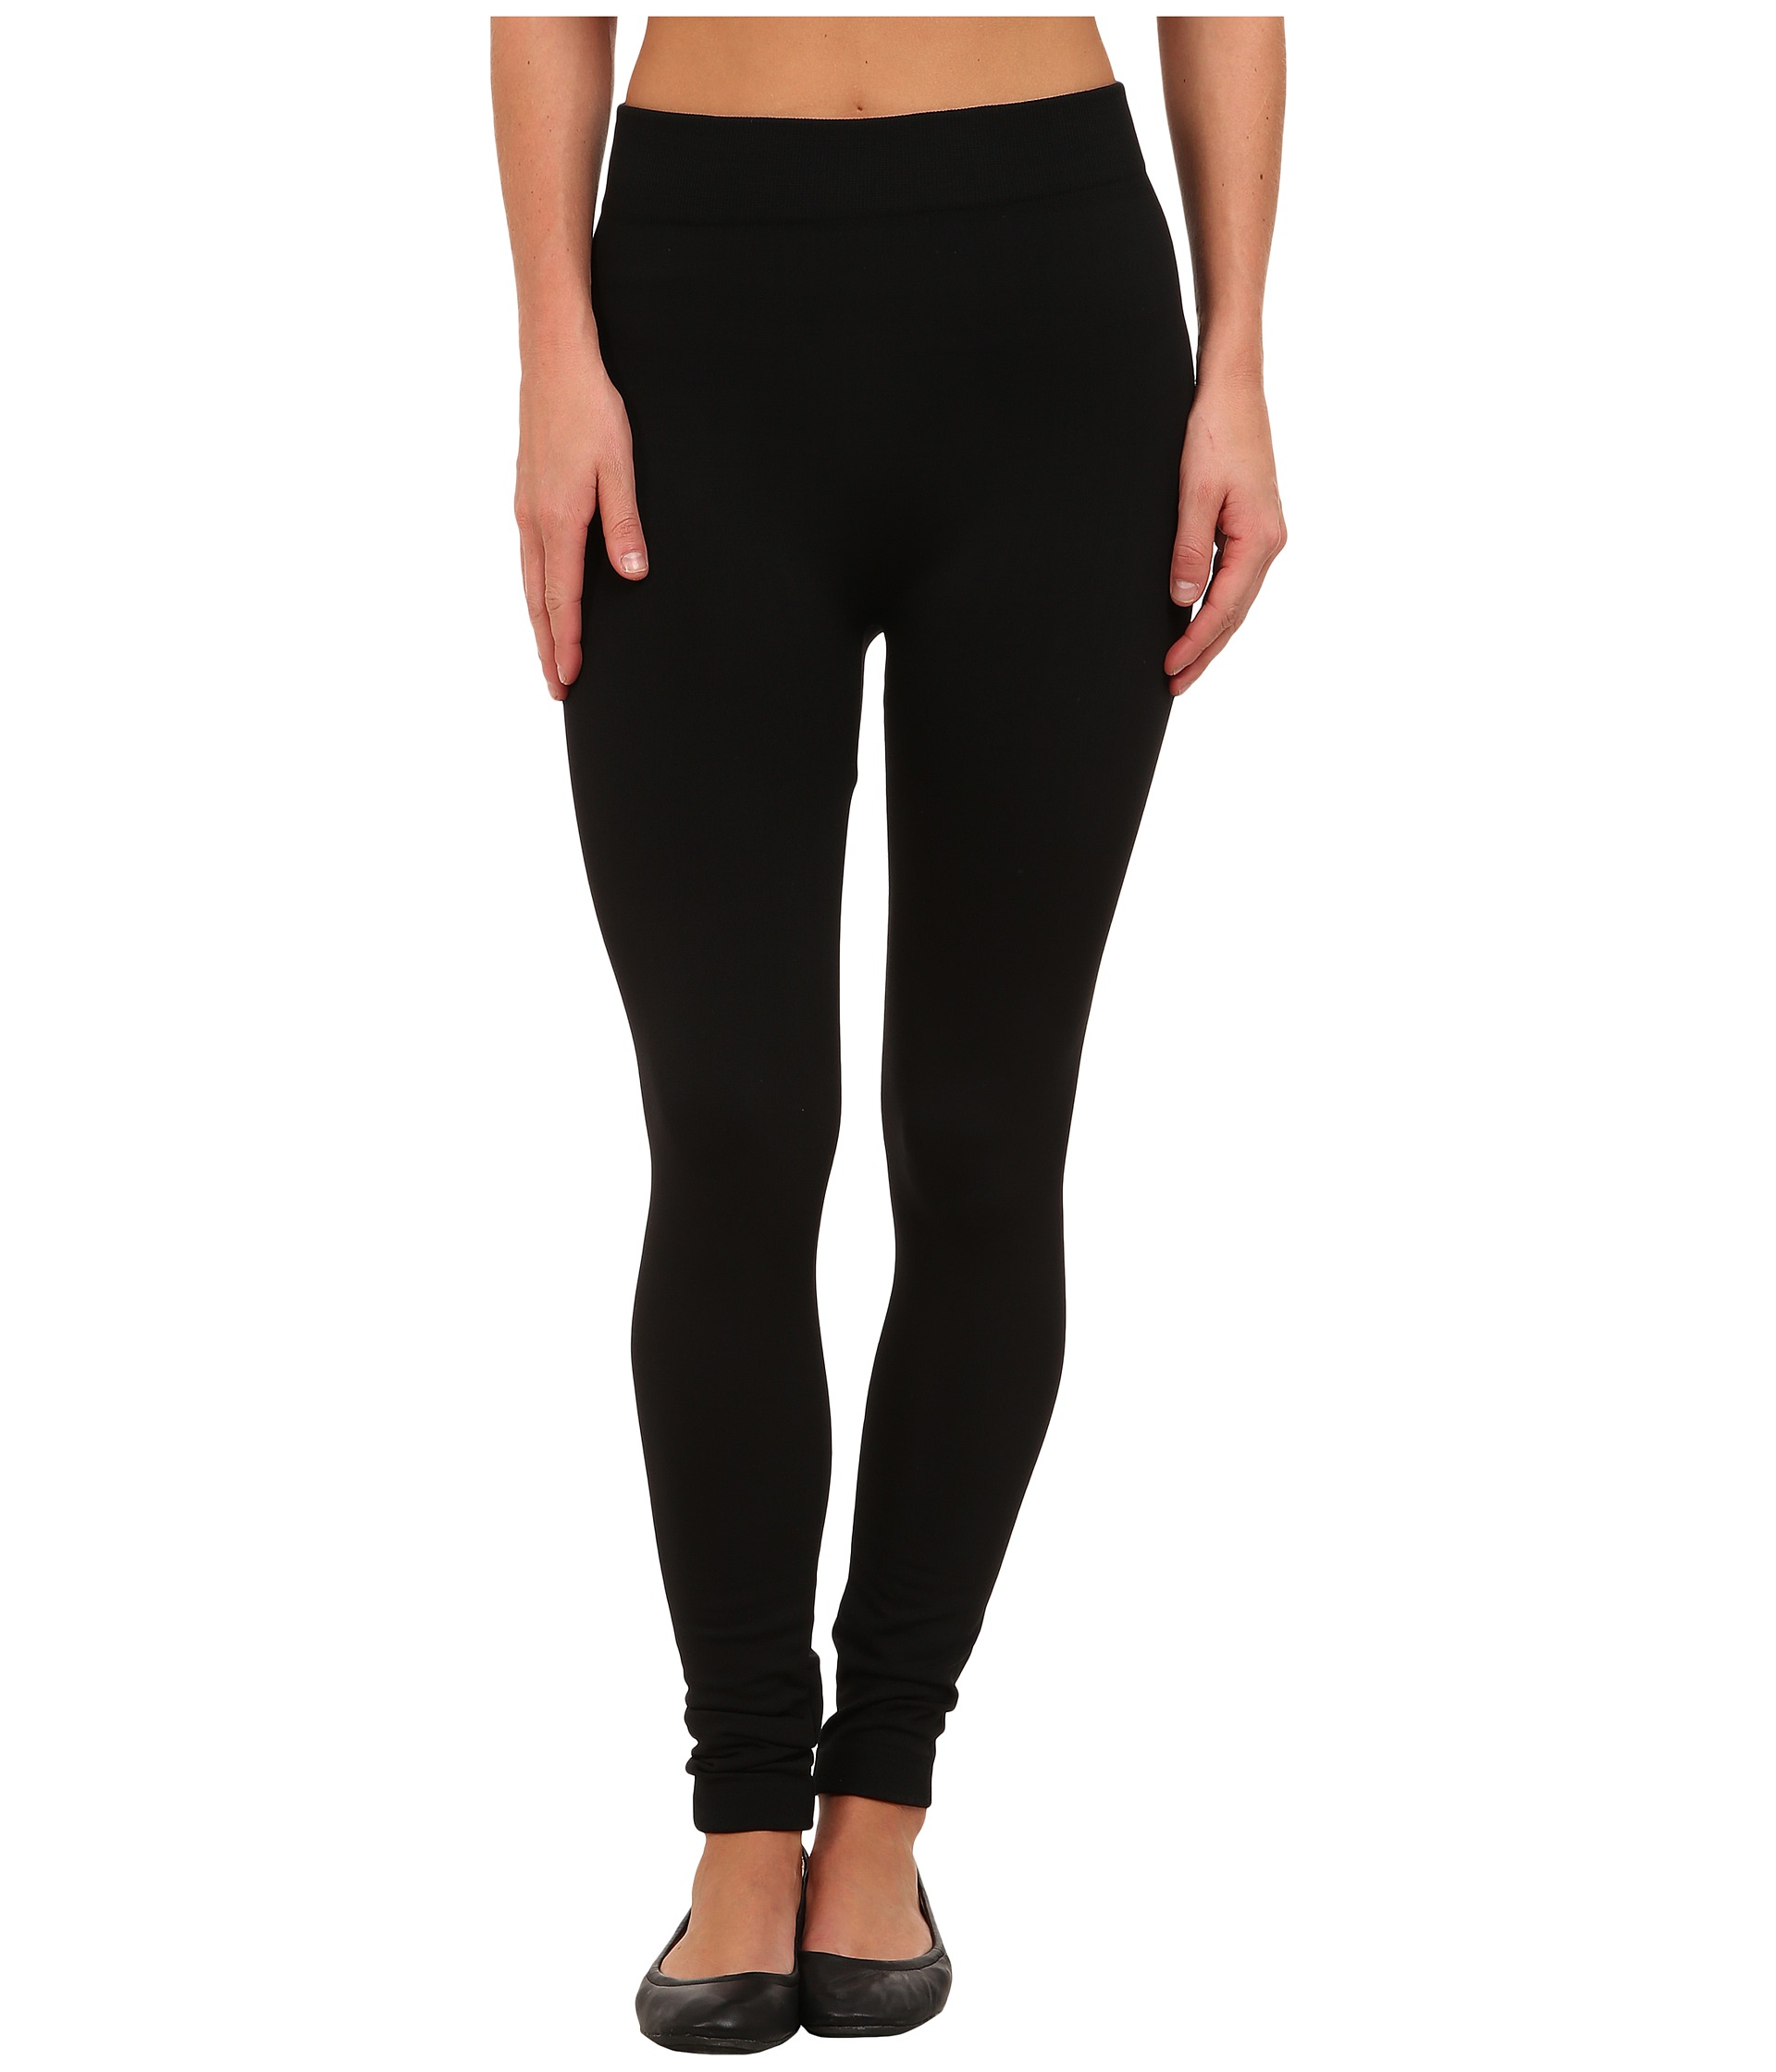 fleece legging steve madden fleece lined legging ZSCSSML